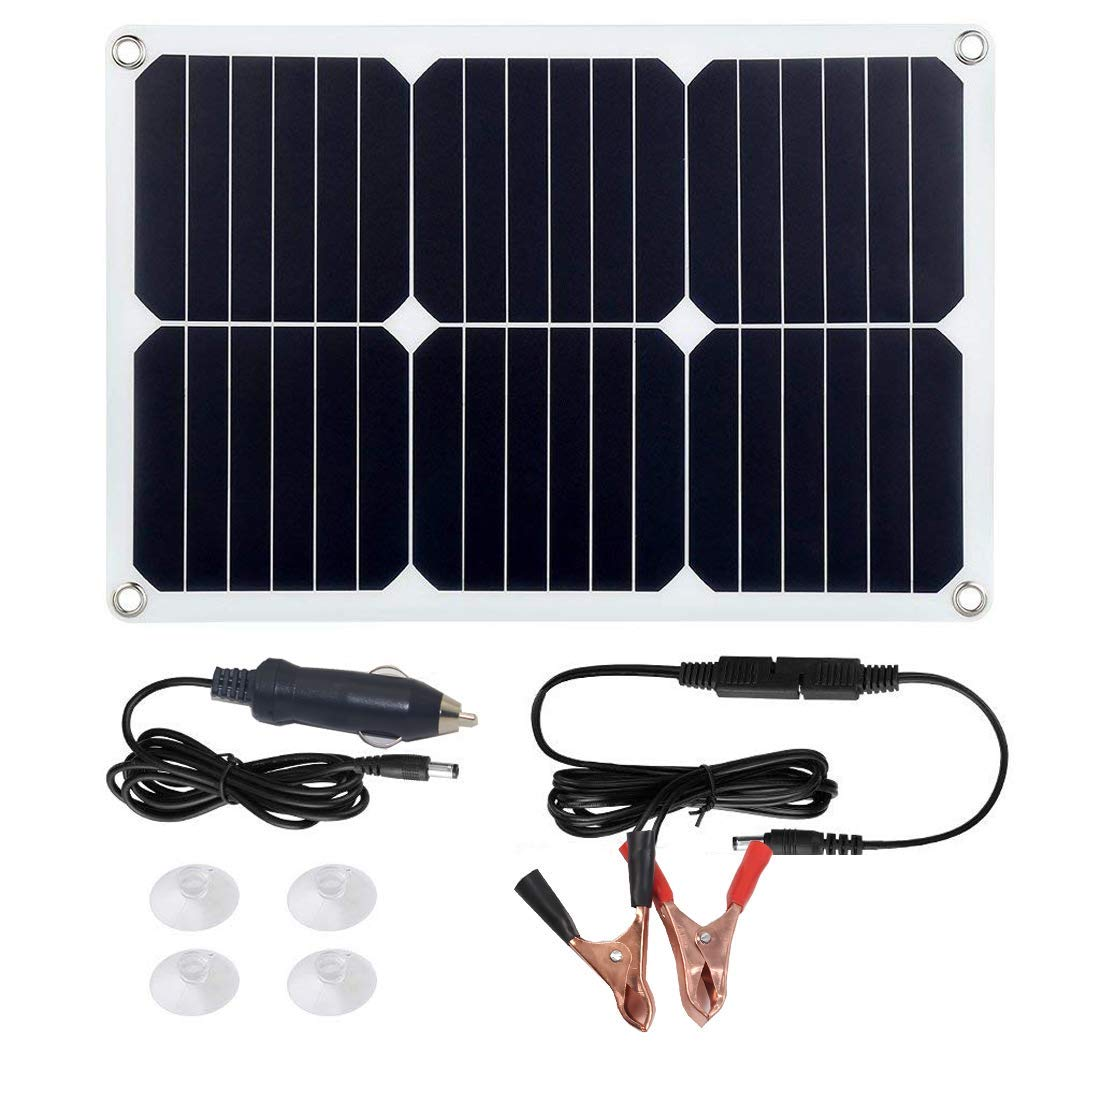 Betop-camp 18V 12V 18W Solar Car Power Battery Charger, Portable Solar Panel Trickle Charger with Cigarette Lighter Plug, Suction Cups, Maintainer for Automobile Motorcycle Boat